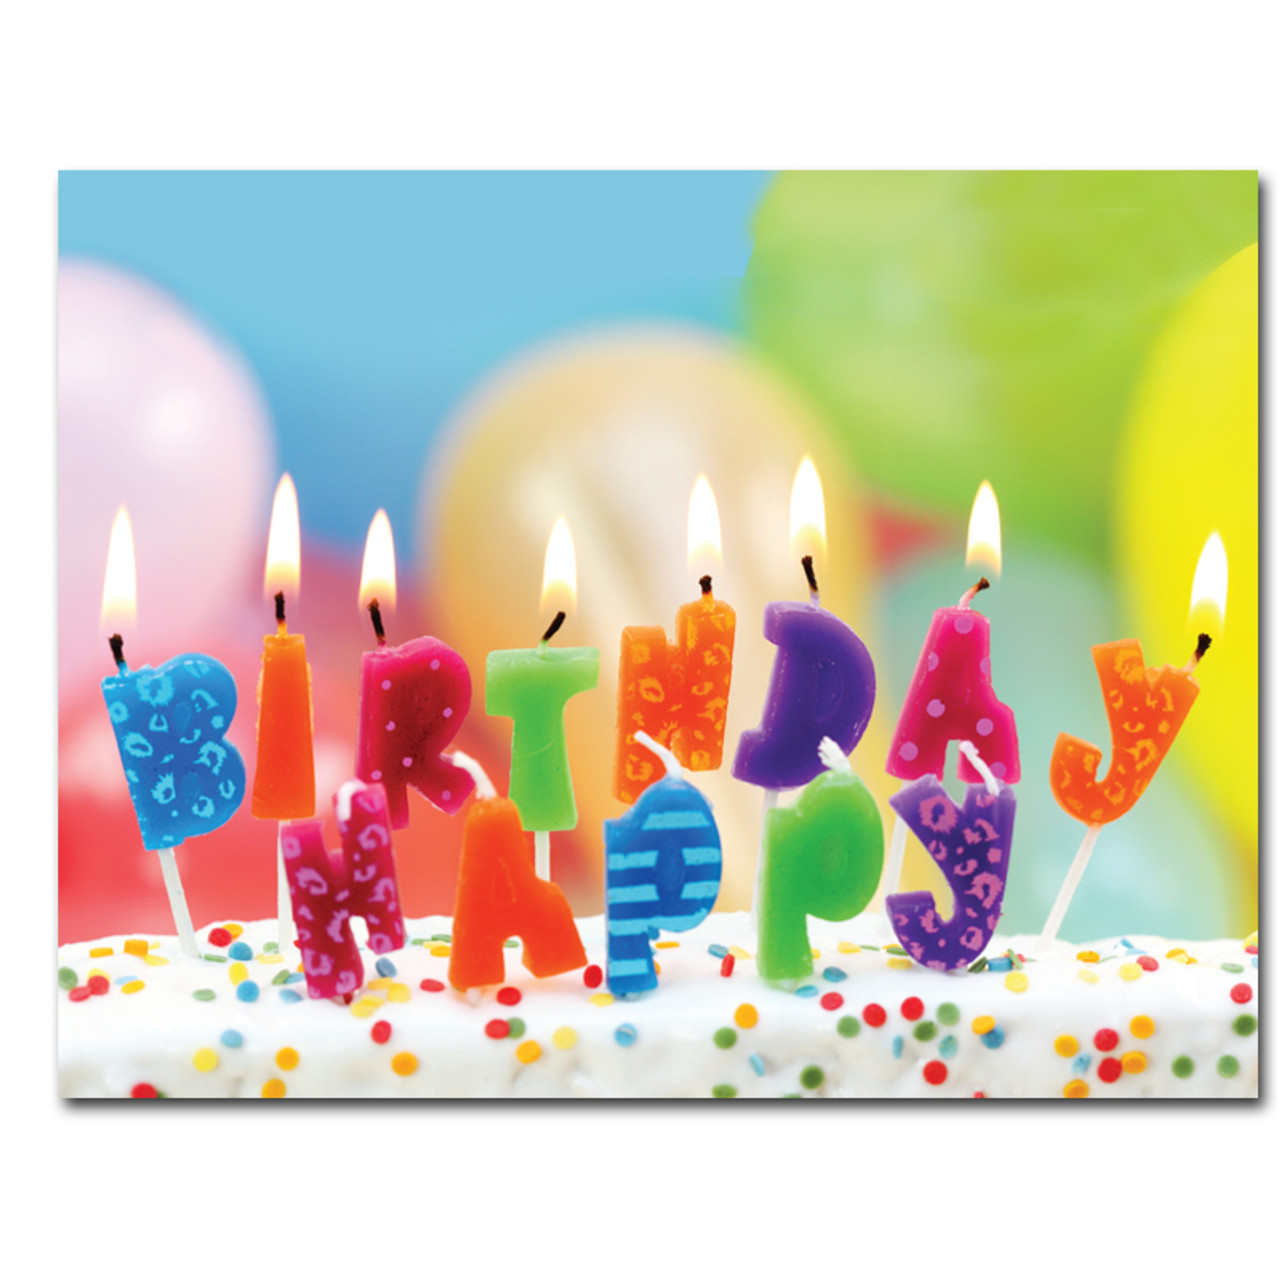 "Birthday Postcard Lighted Letters is a photo of lighted birthday candles shaped like letters, on a cake with balloons in the background, that spell out the words ""Happy Birthday""."